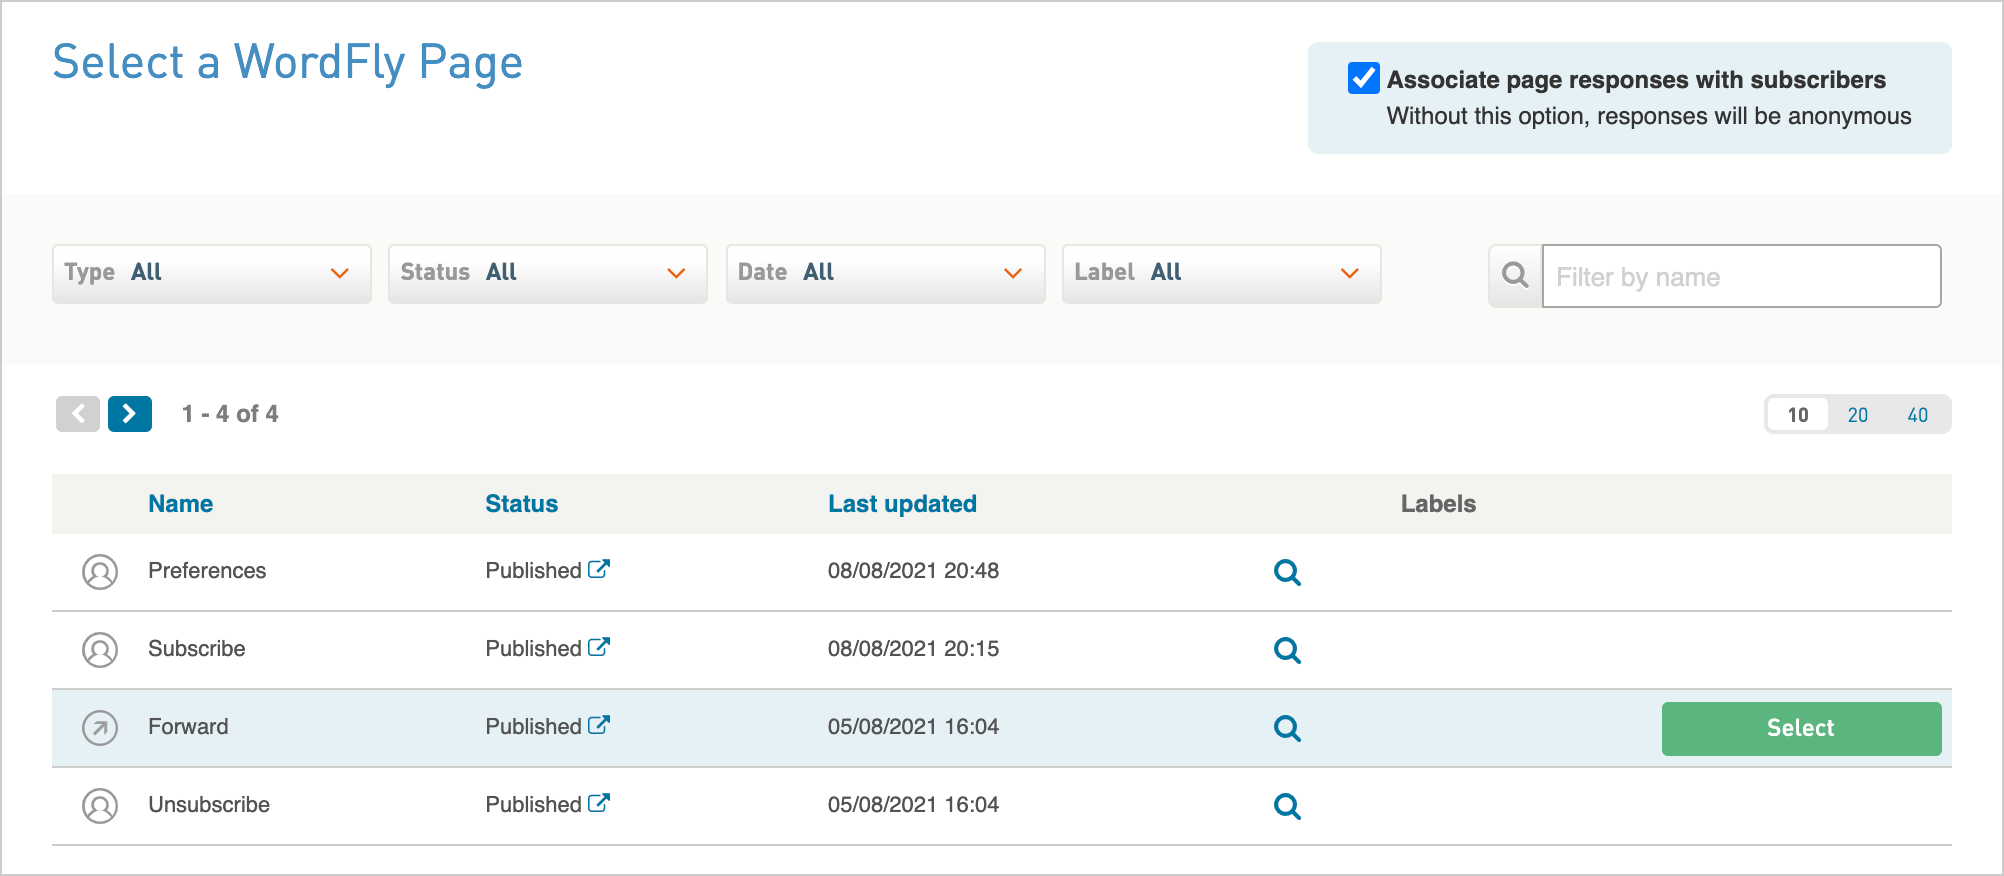 Screenshot of Browse Pages window with the Forward row highlighted